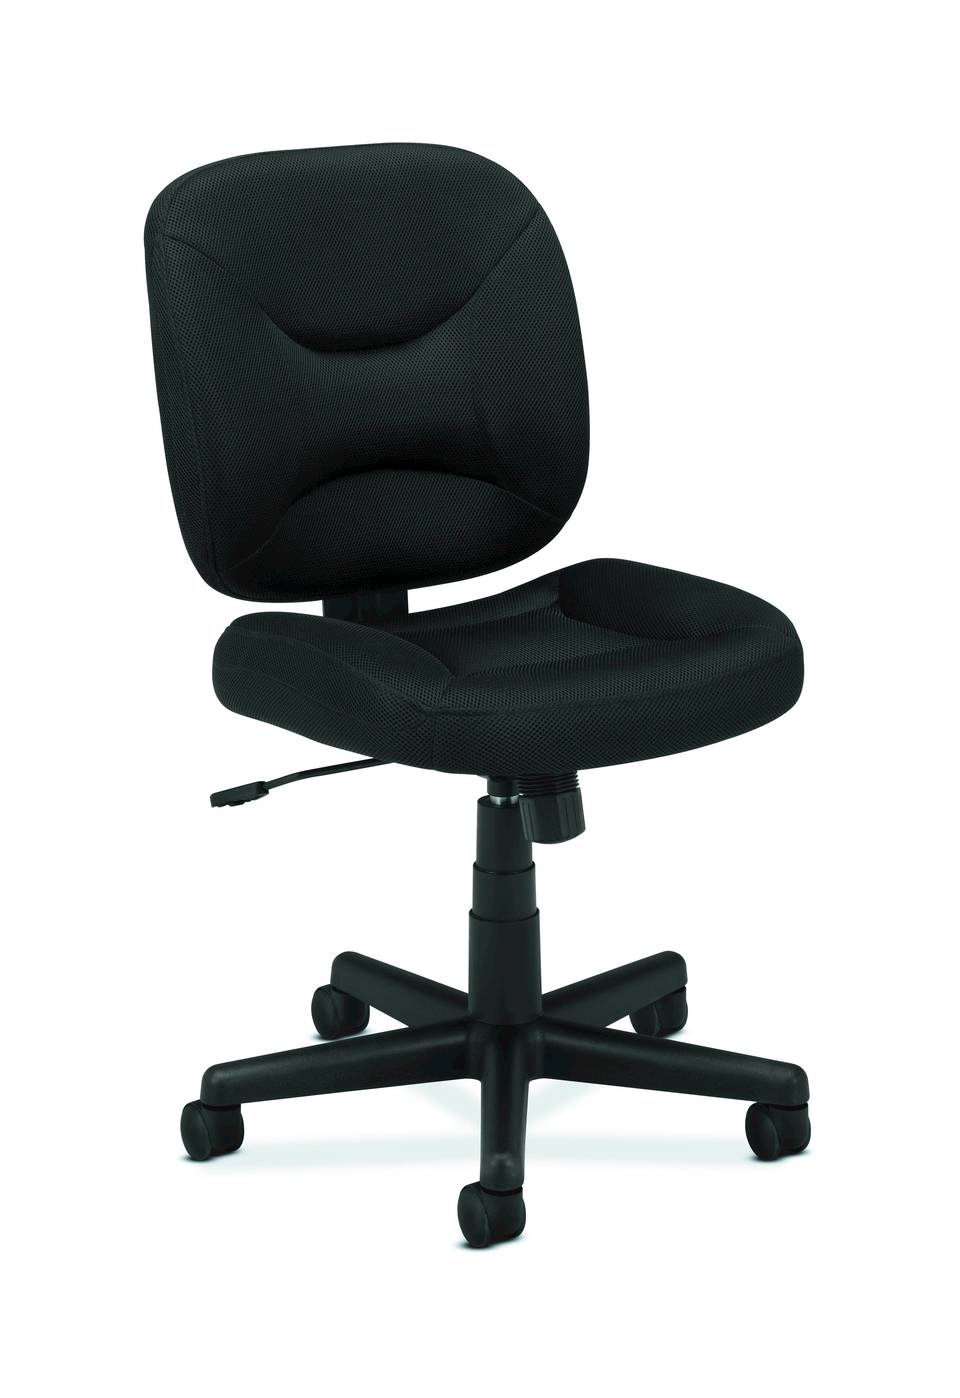 basyxhon vl210 light duty pneumatic task chair blackoffice